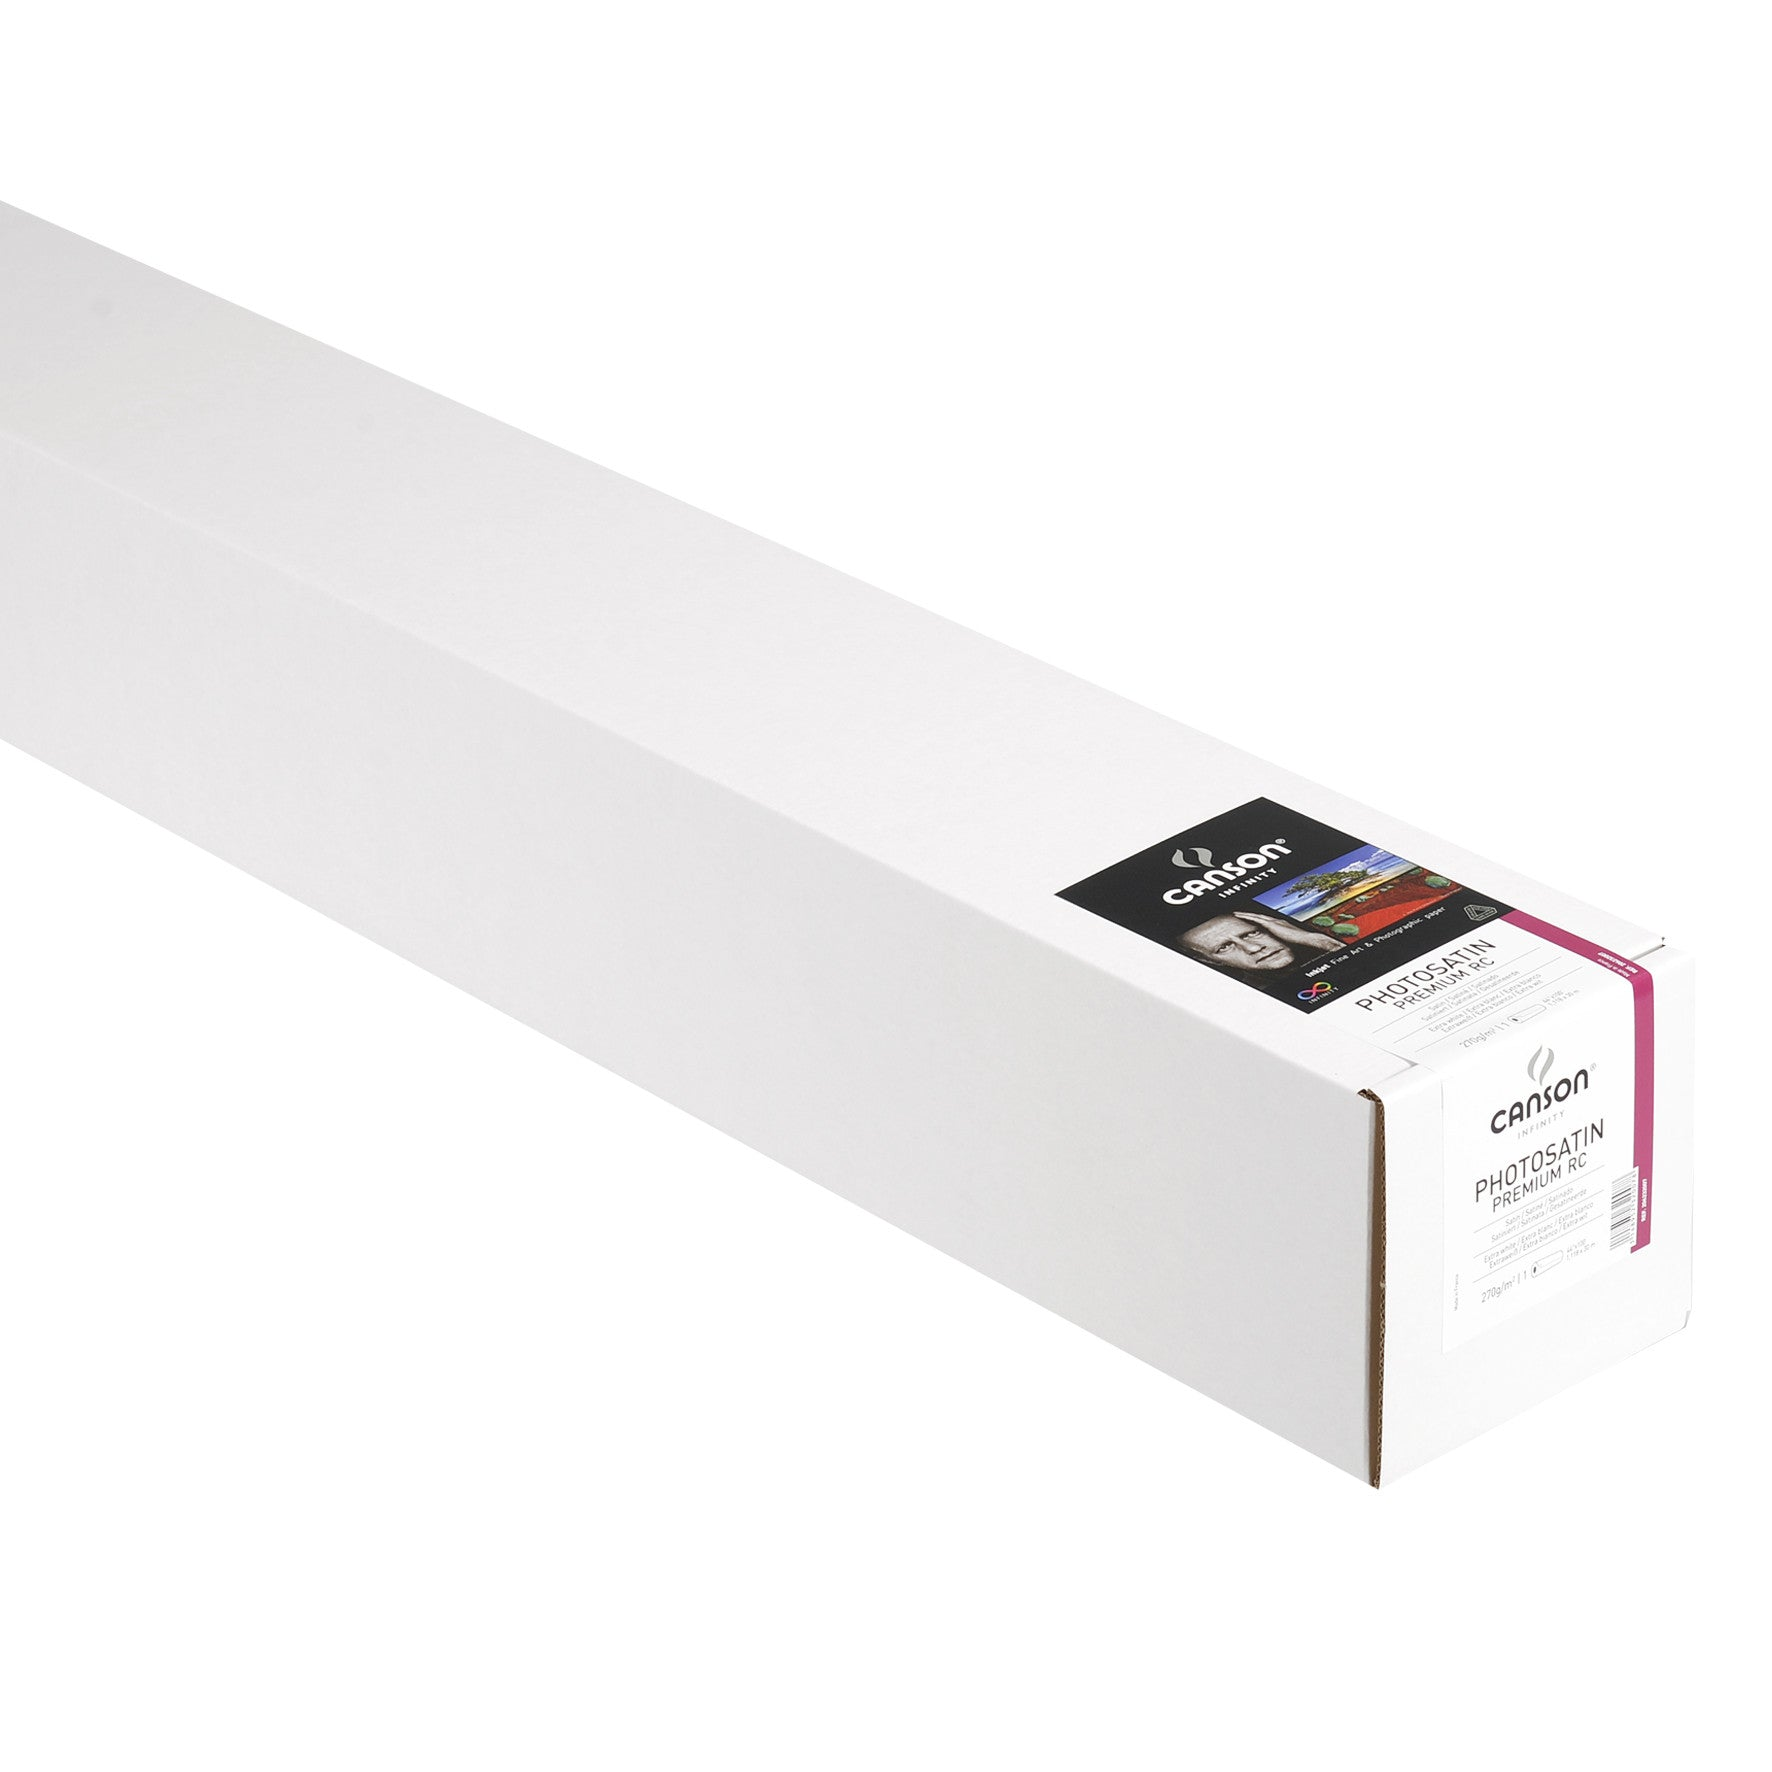 "Canson Infinity Photo Satin Premium RC - 270gsm - 44""x100' roll"